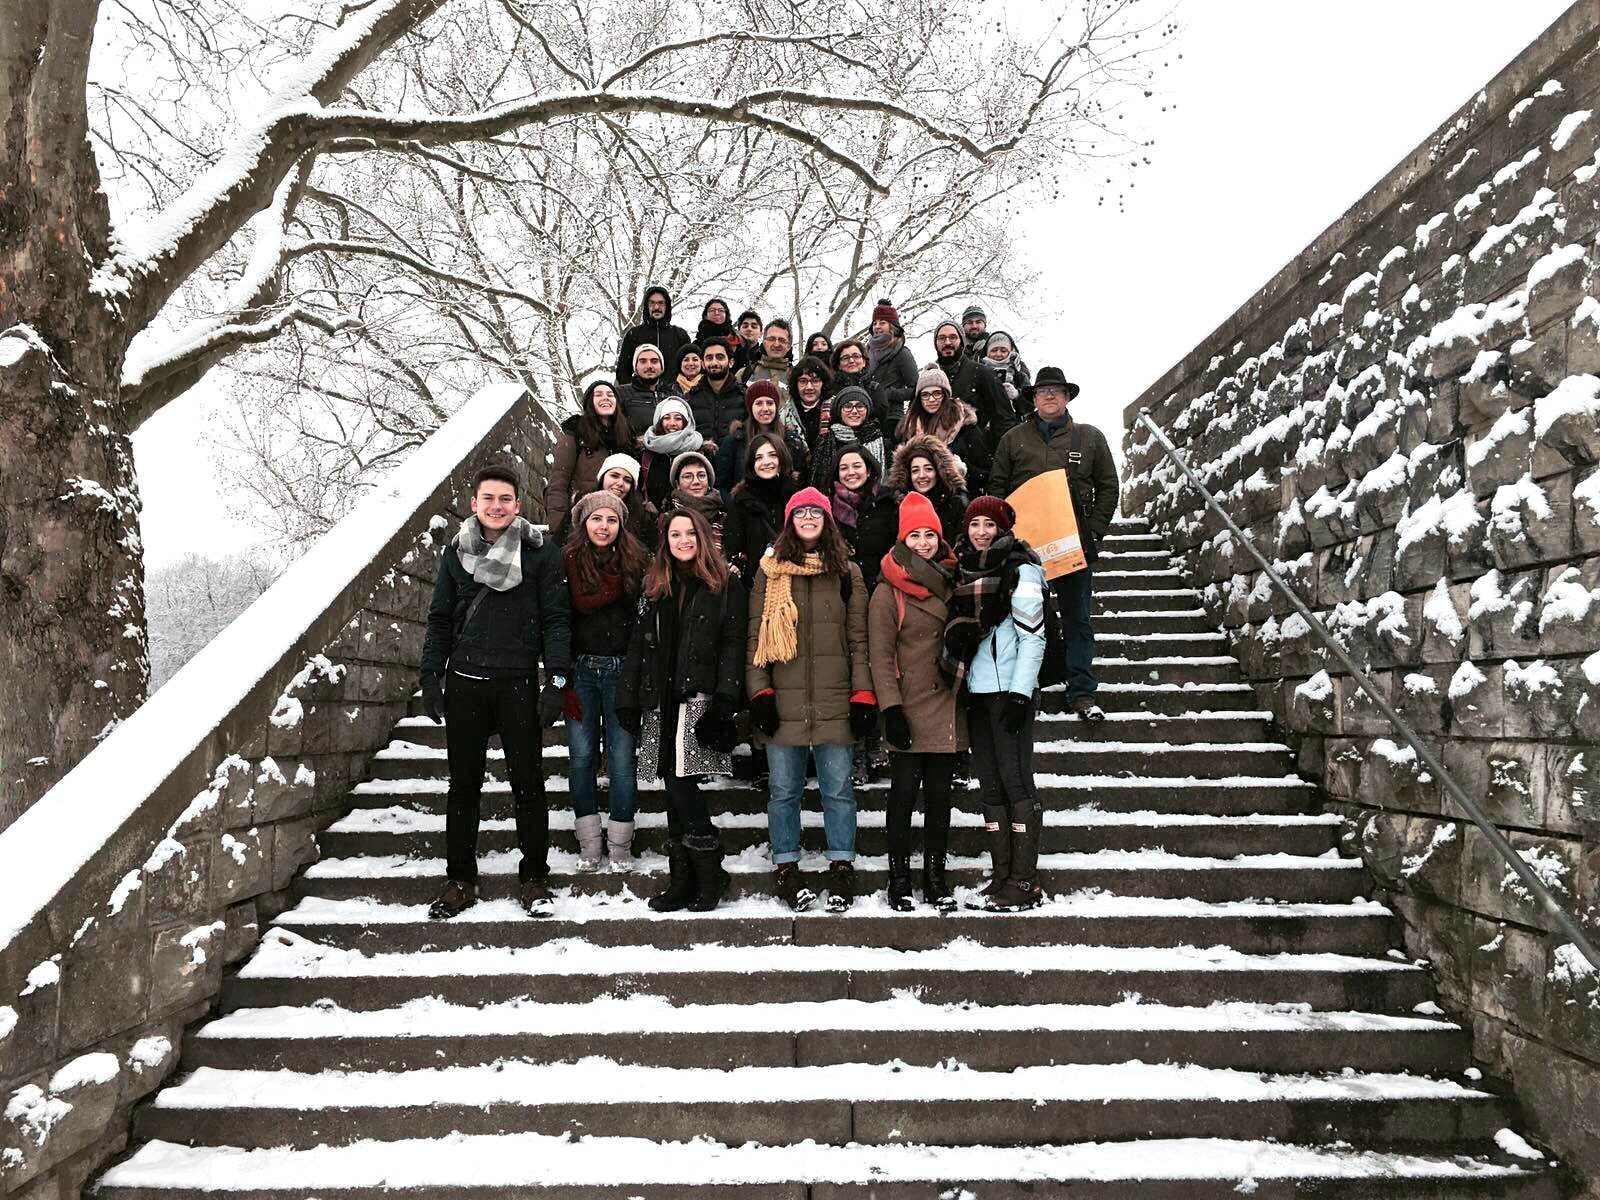 "MEF University students. At the Schillerpark, Berlin. This excursion to Berlin took place from 16–20 January 2016 – for the second year undergraduate architectural studio, which is run by Sevince Bayrak and Arda Inceoglu. The studio's subject for this semester is ""Dwelling in Berlin"" and the students will design housing units with different scenarios in Berlin."